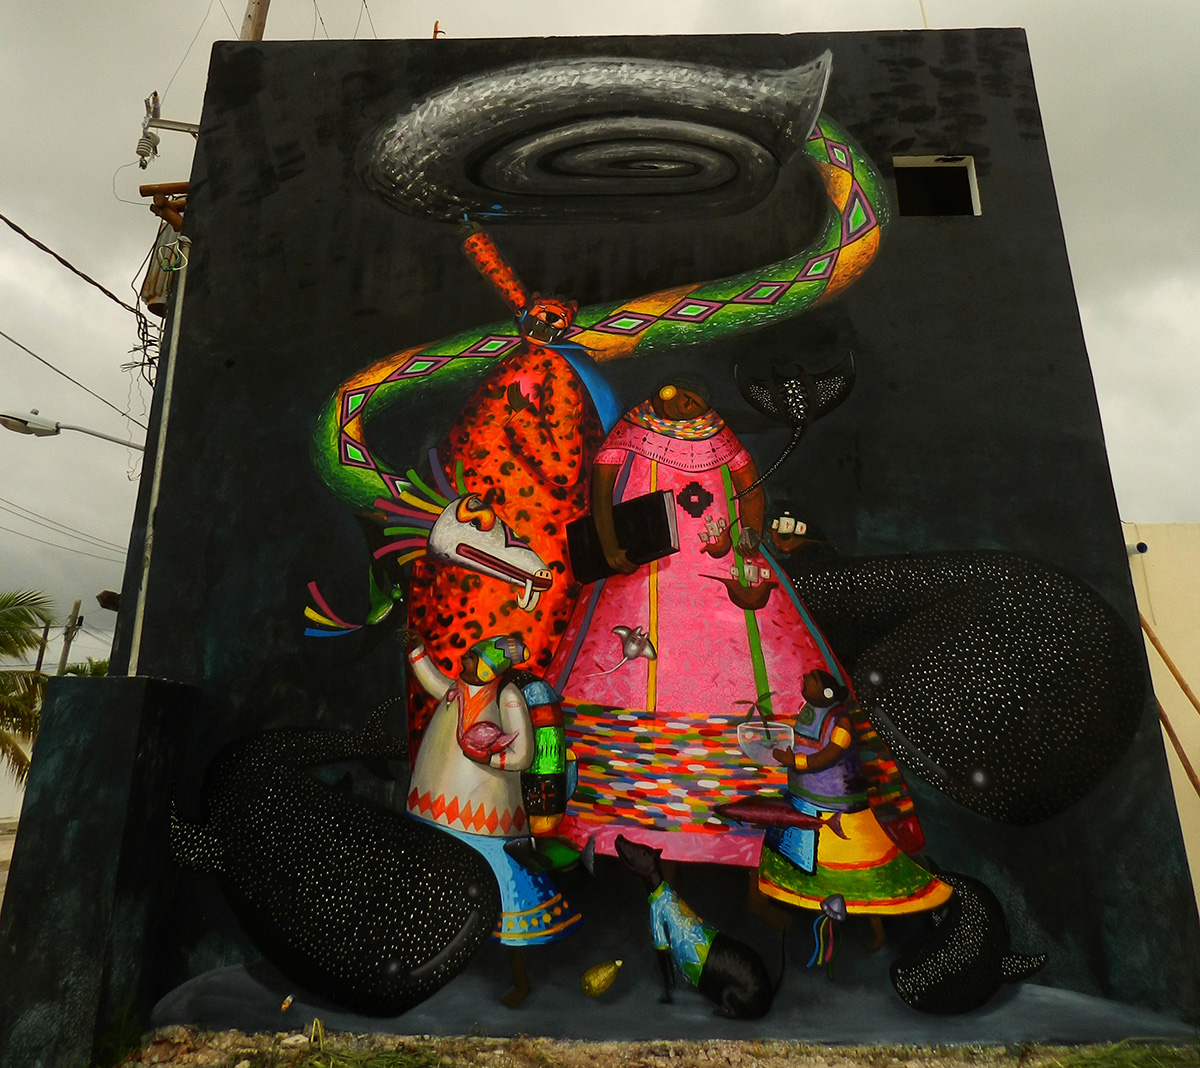 spaik-new-mural-in-holbox-island-mexico-01